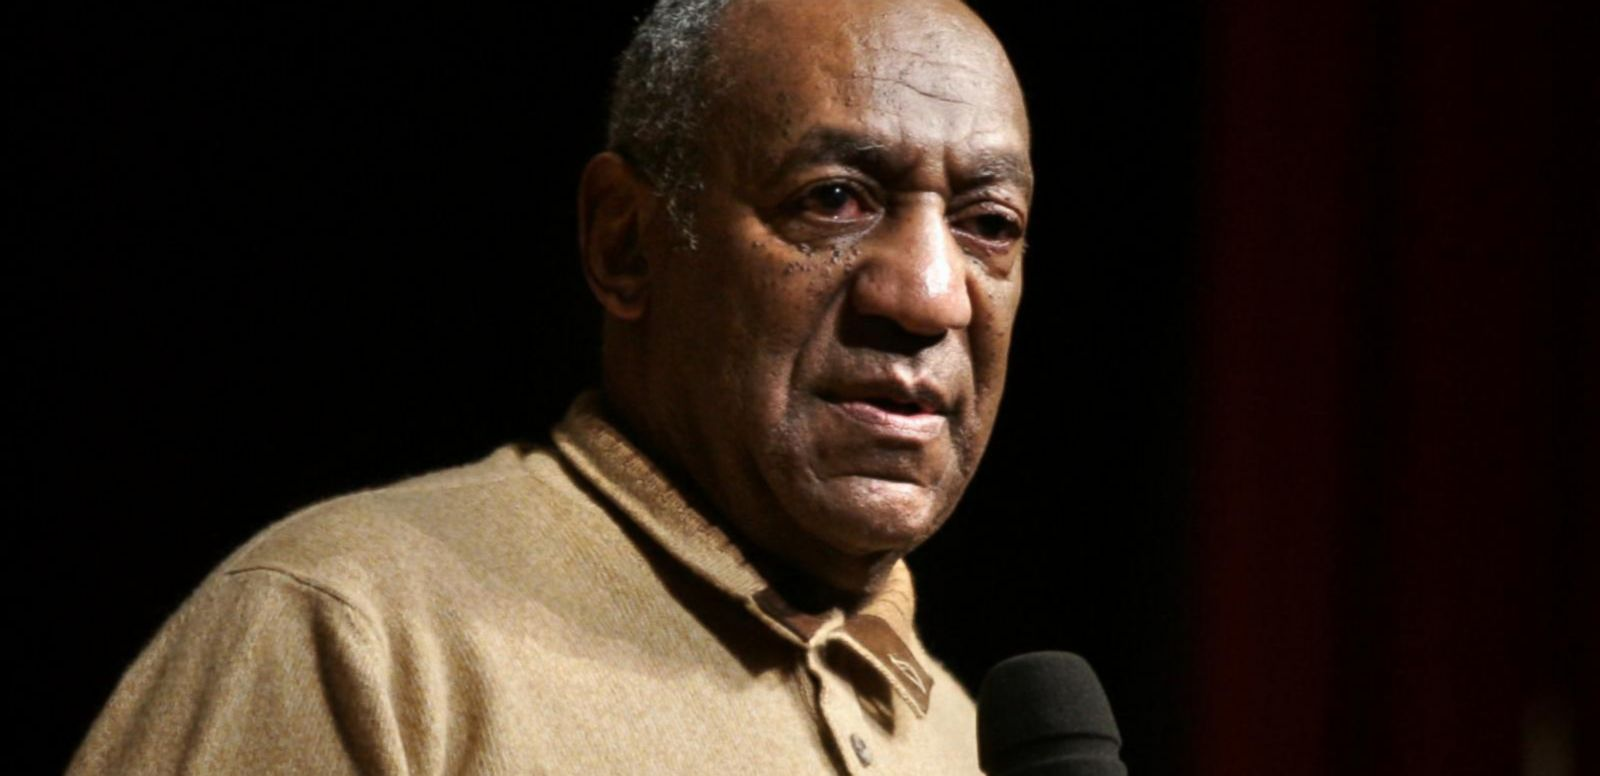 VIDEO: Bill Cosby Will Stand Trial on Sexual Assault Charges